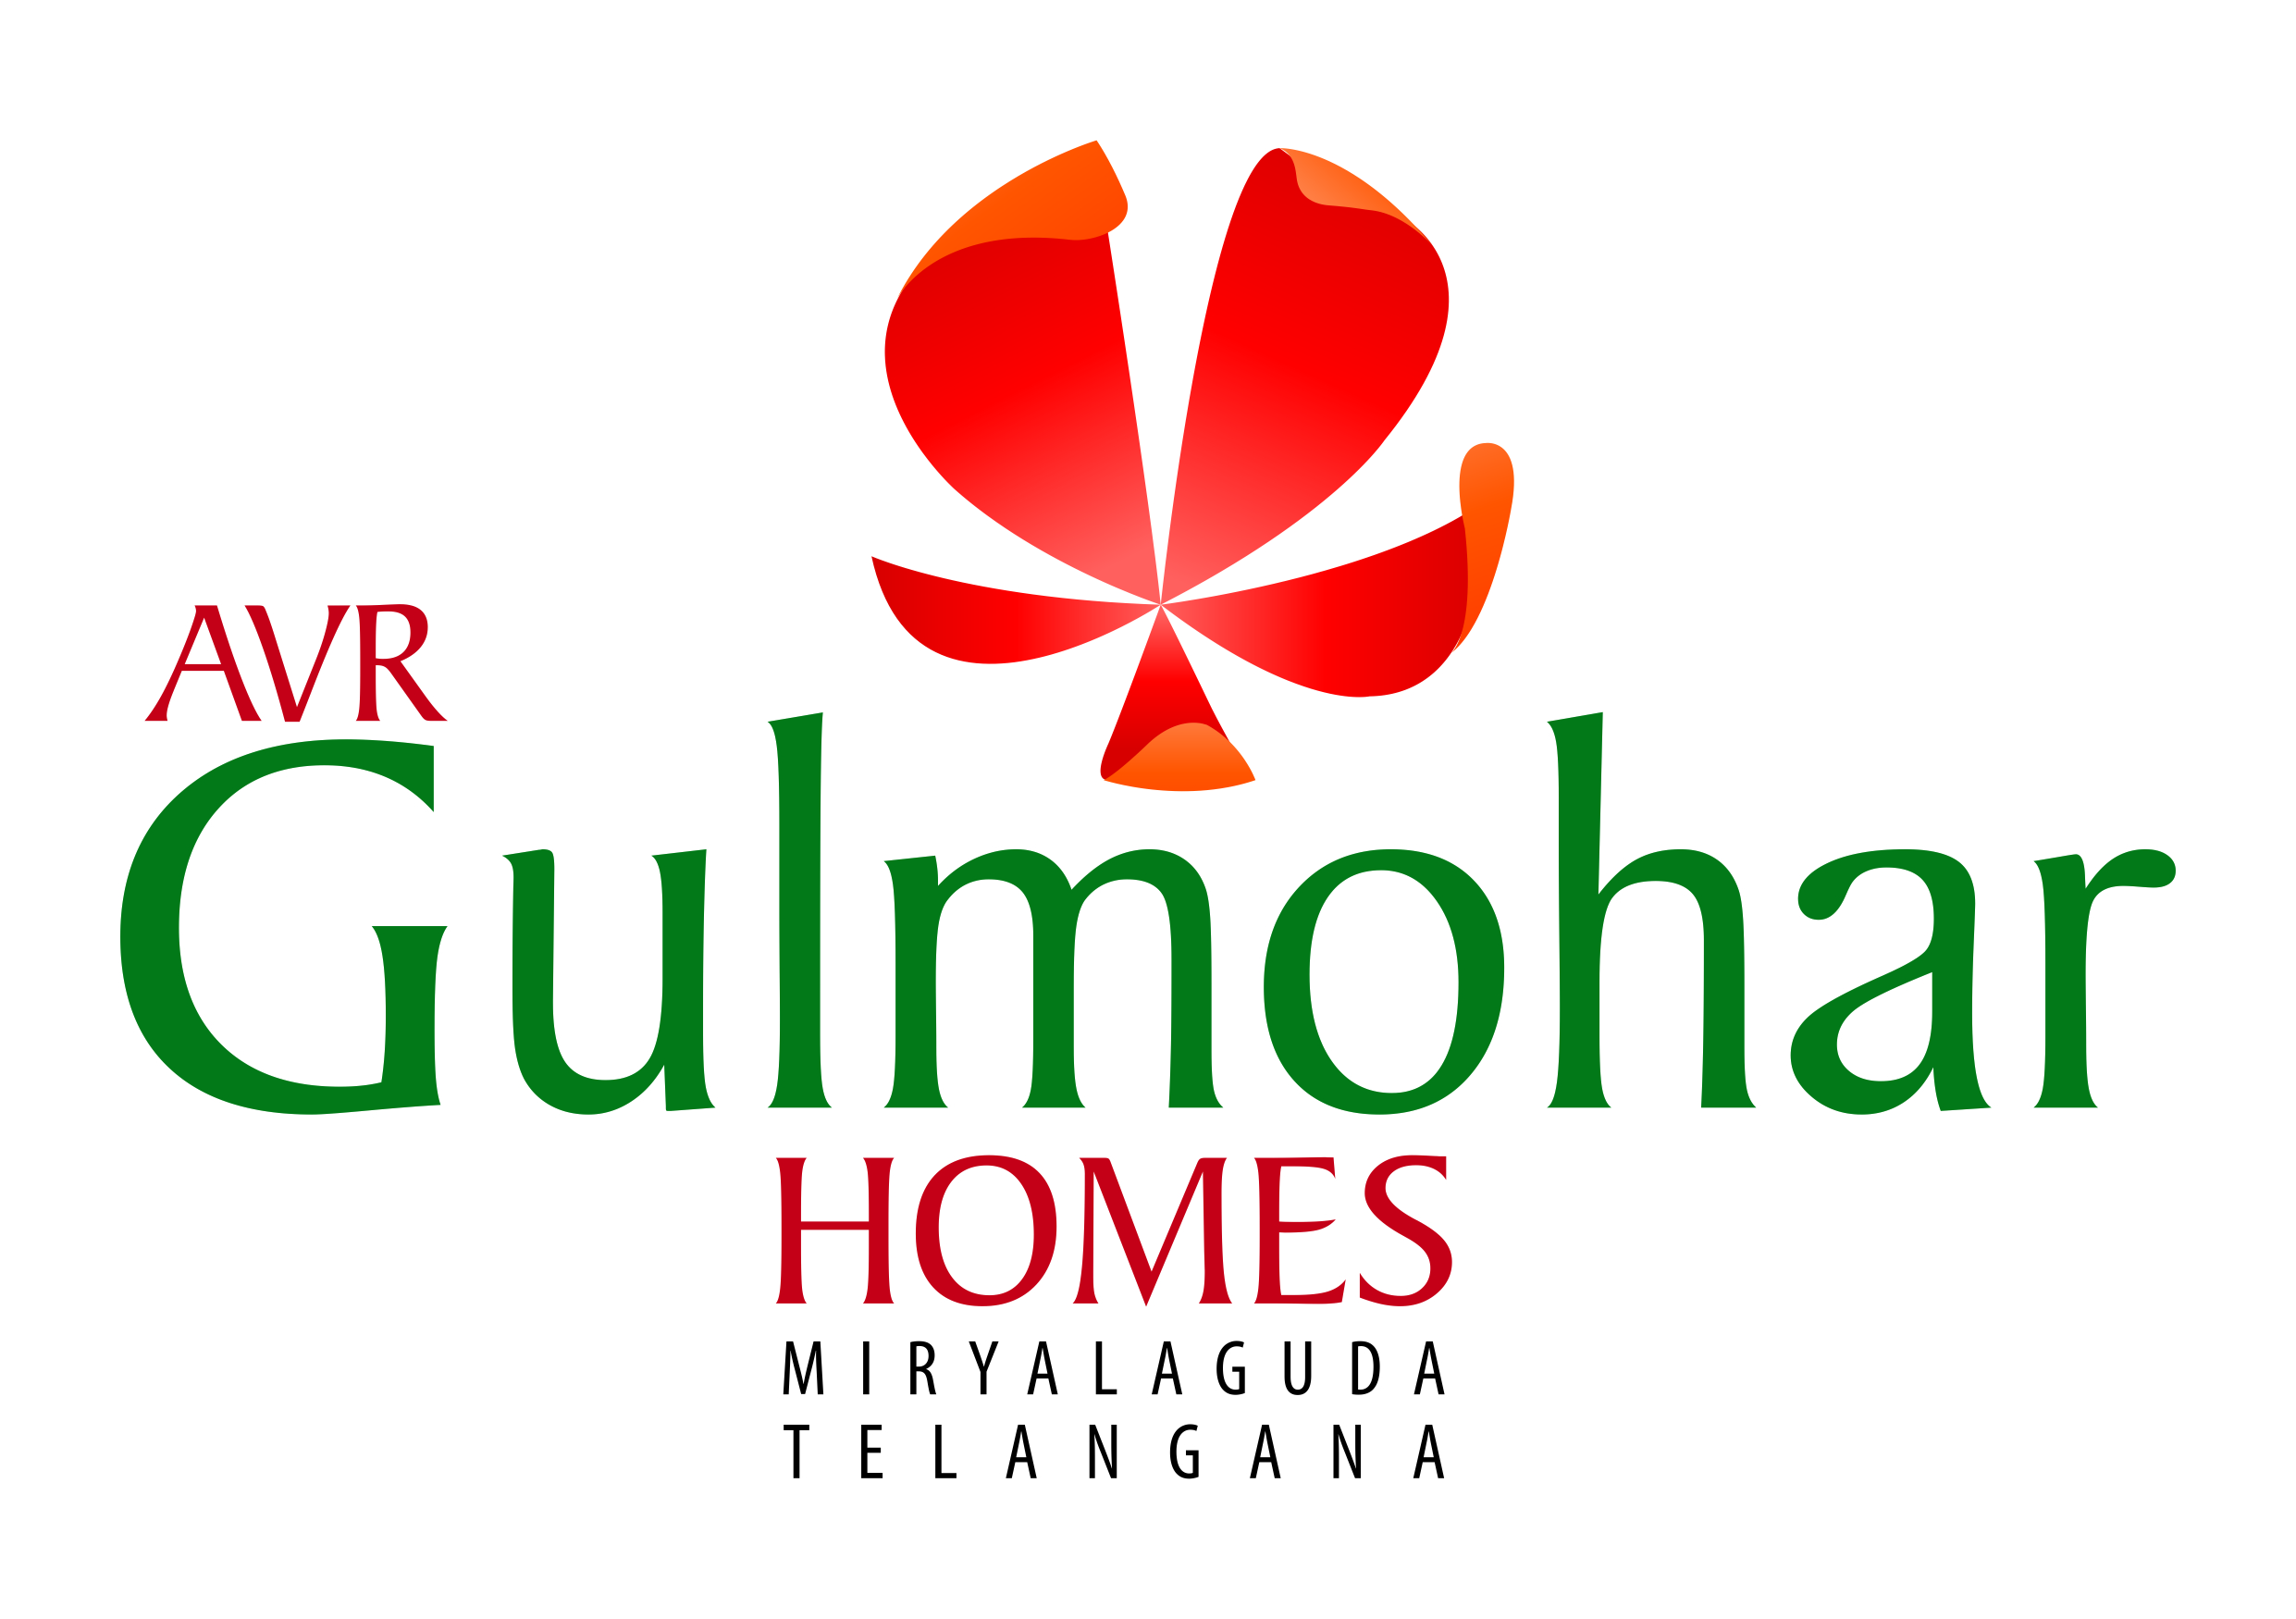 AVR Gulmohar Homes